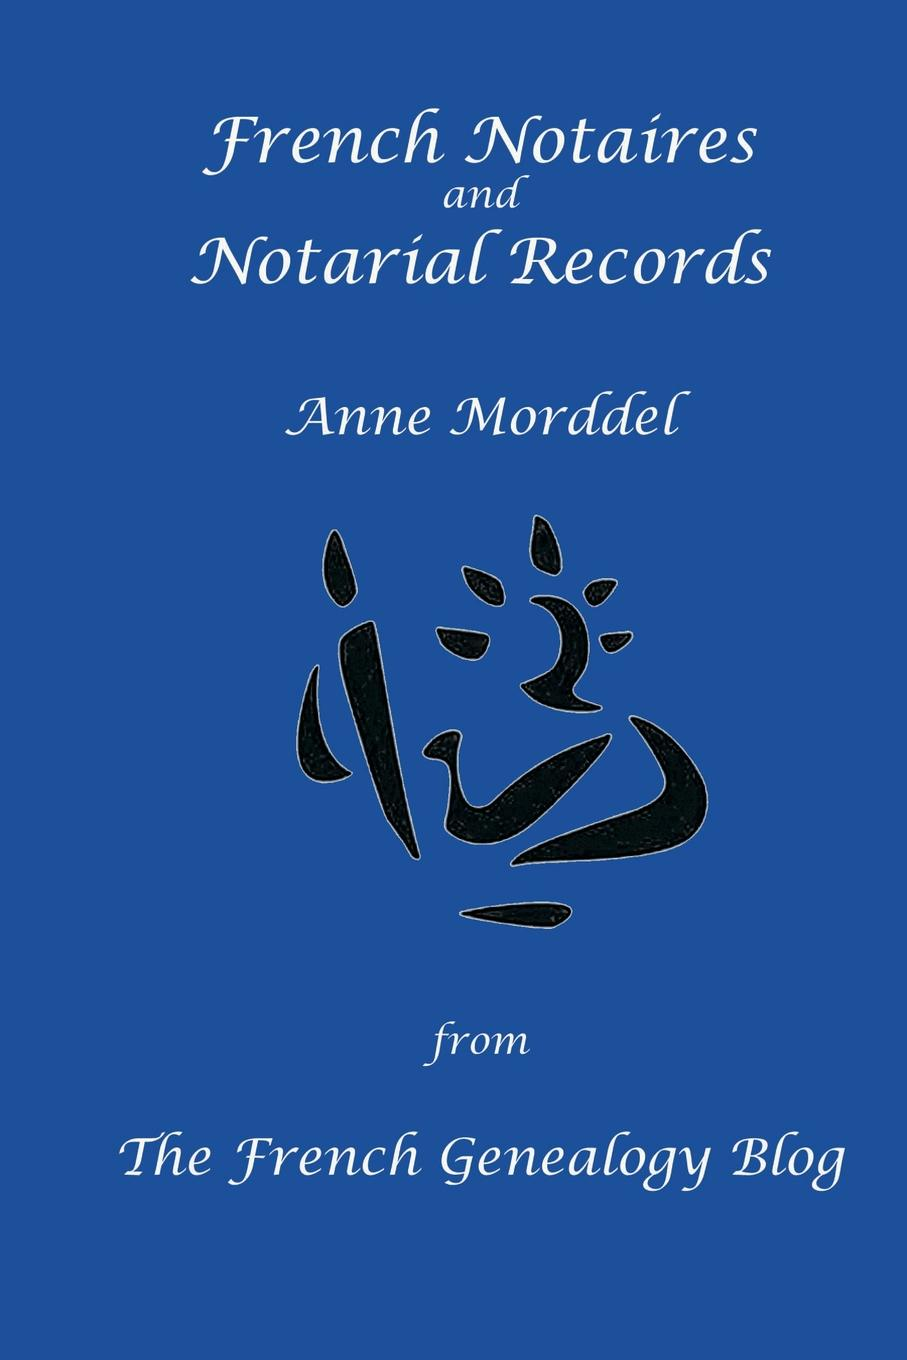 Anne Morddel French Notaires and Notarial Records from The French Genealogy Blog anne morddel french notaires and notarial records from the french genealogy blog